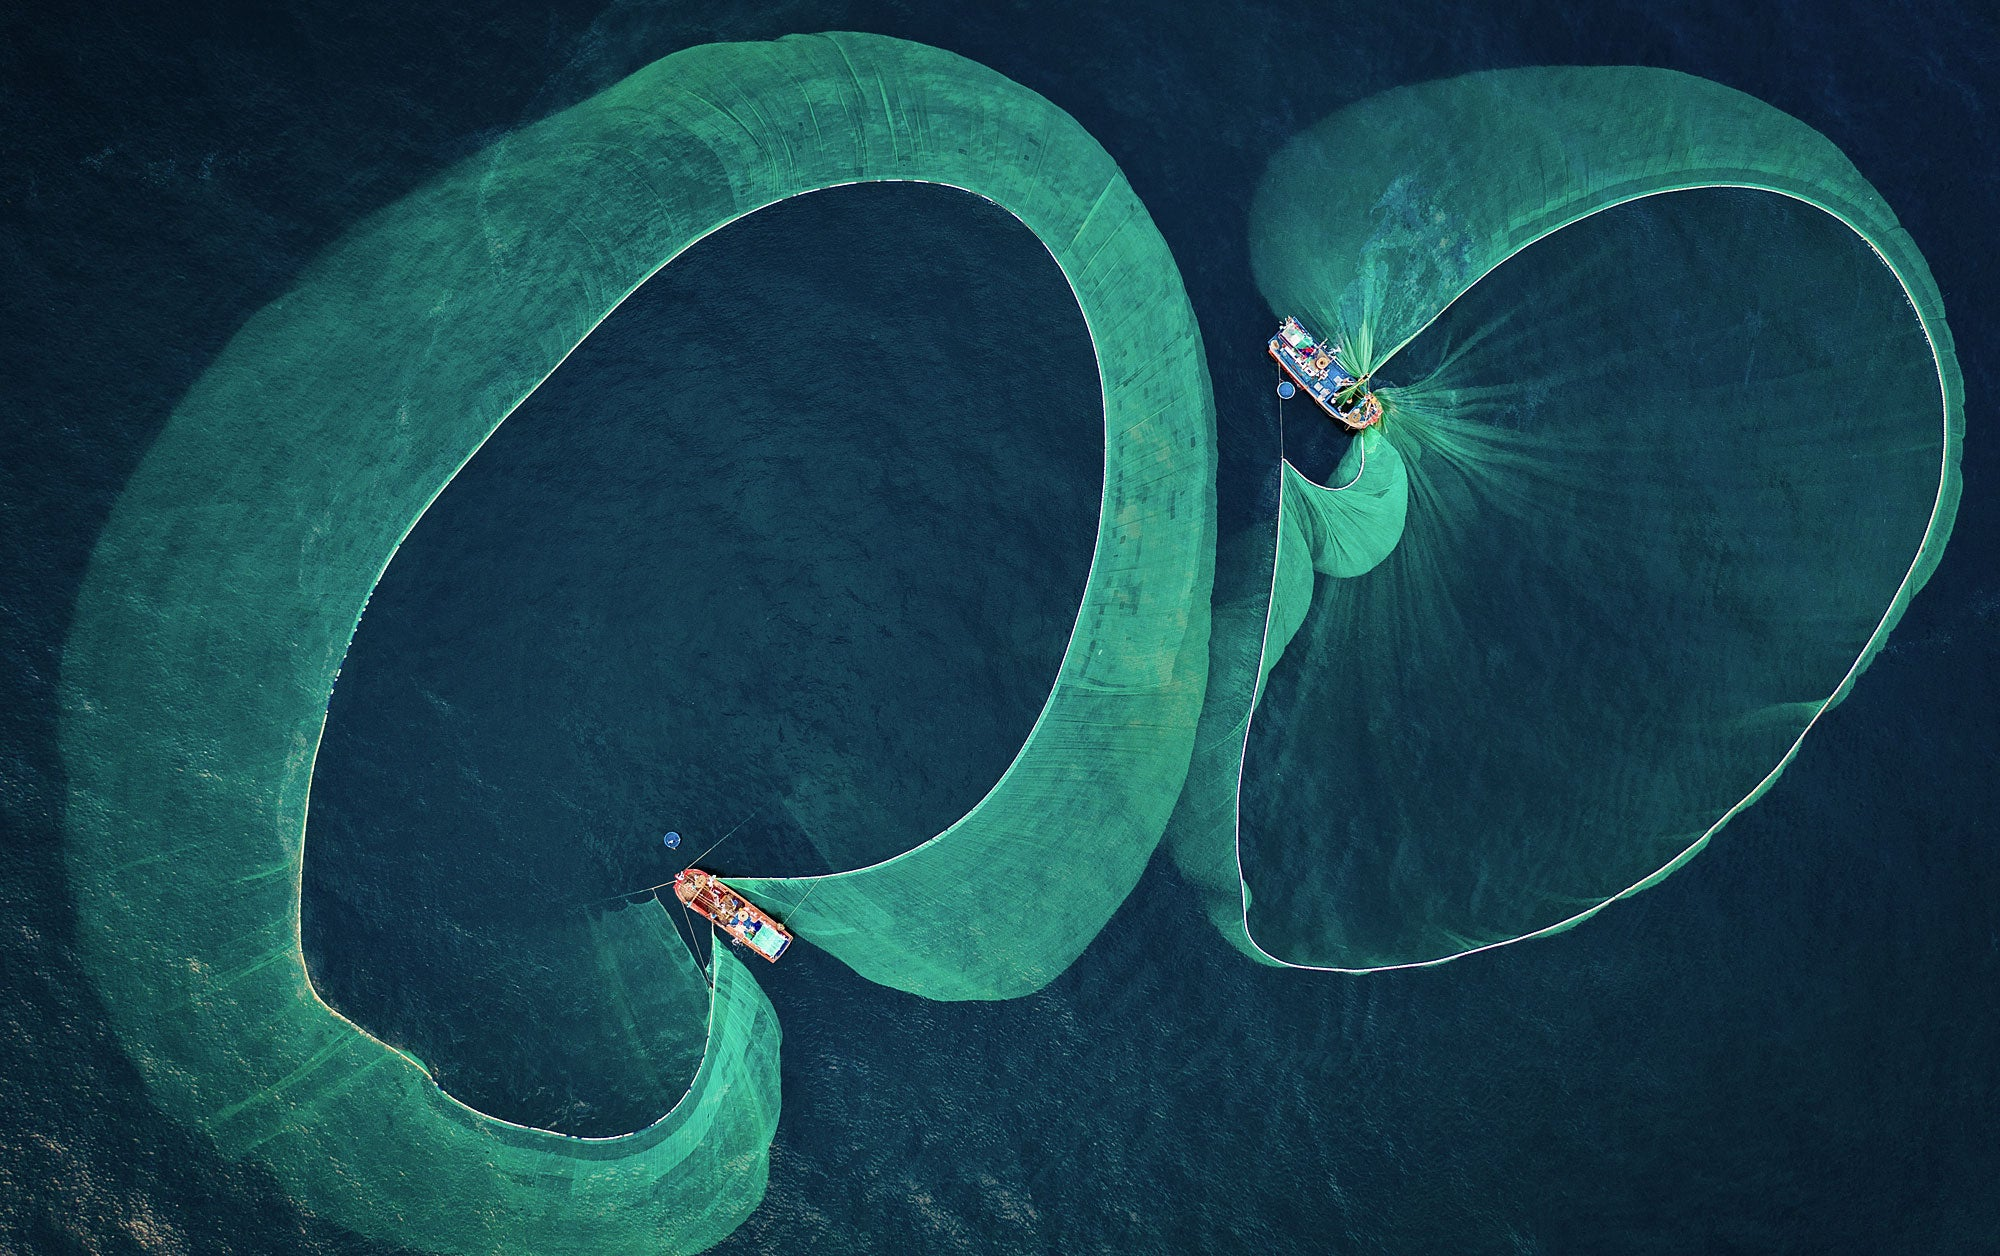 nchovy fishing boats photographed from above along the coastline